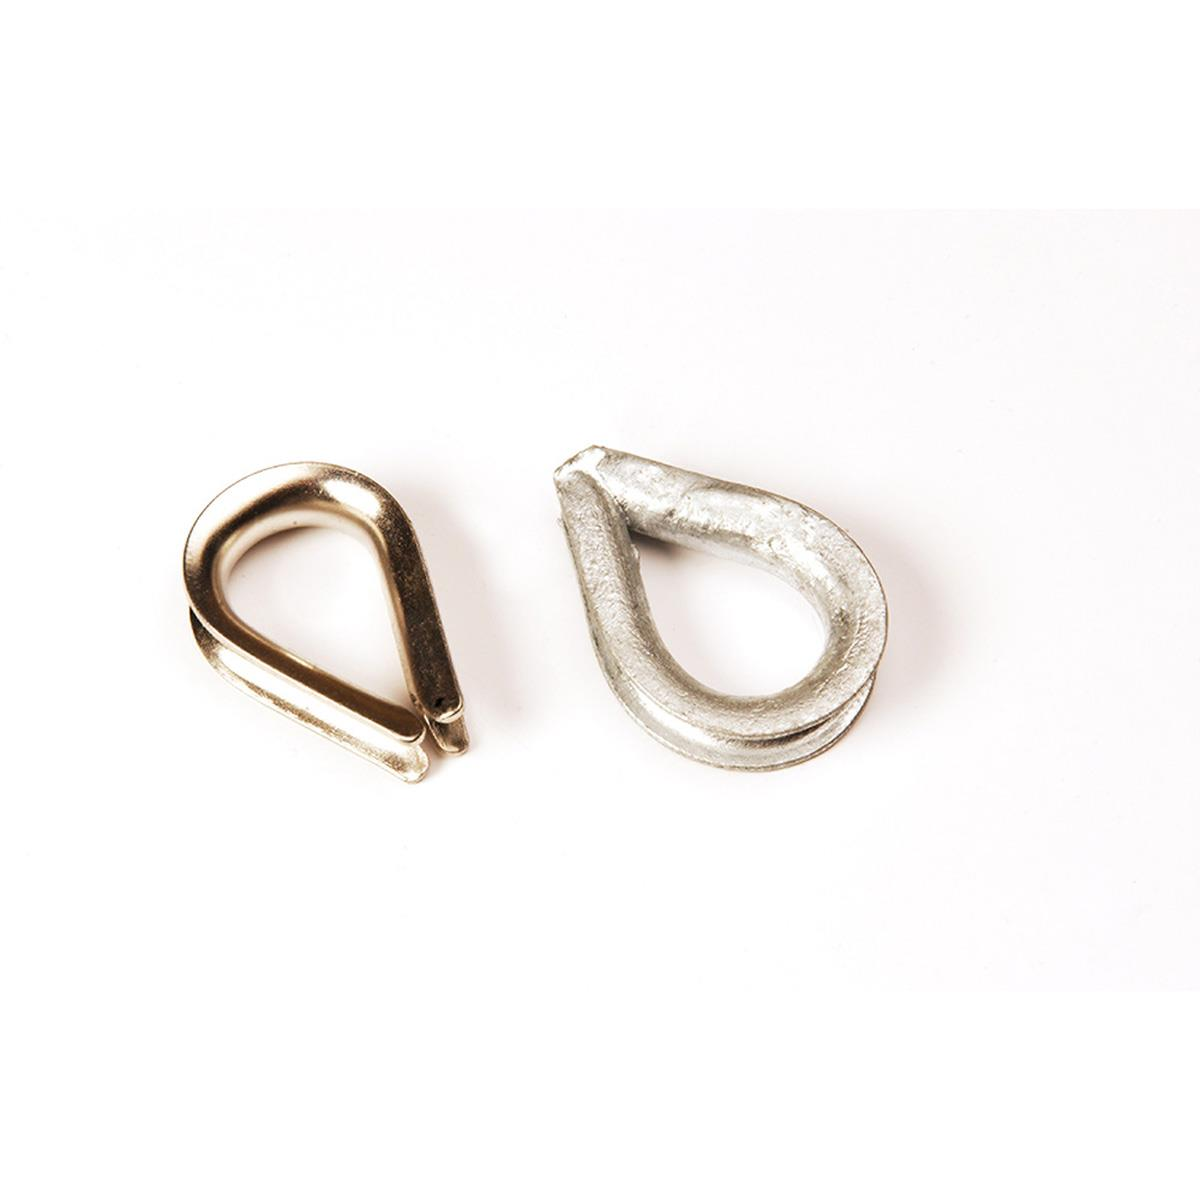 3mm Stainless Steel Rope Thimble